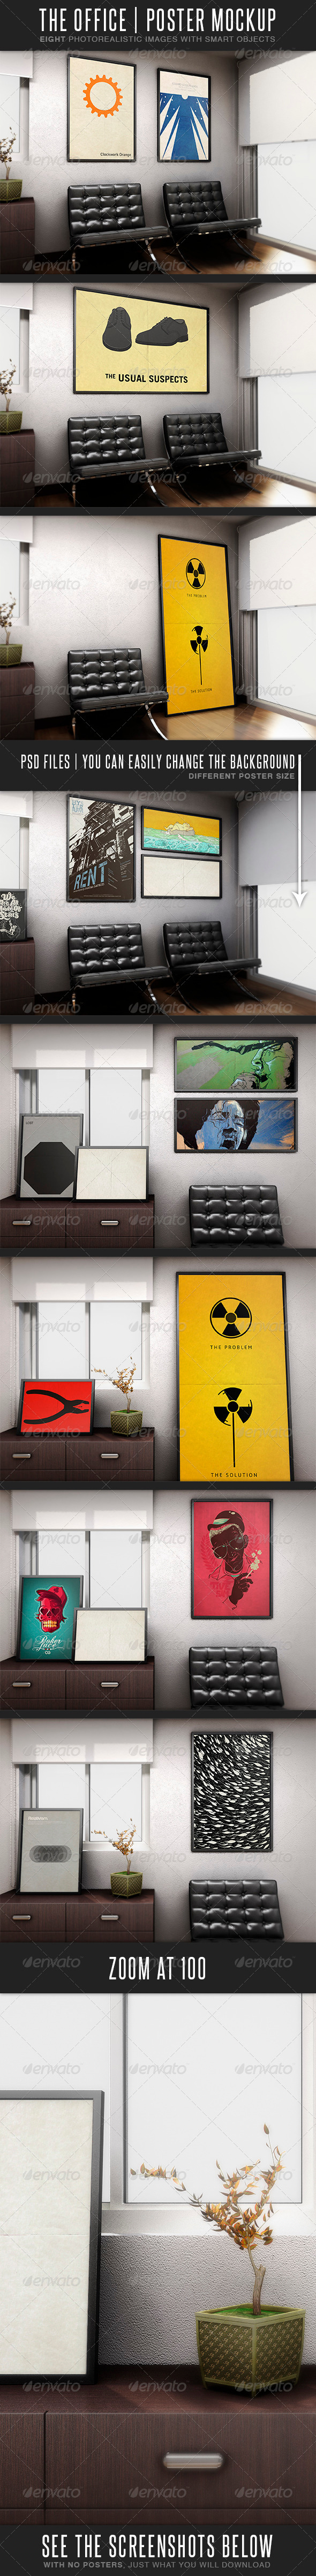 The Office MockUp - Miscellaneous Displays